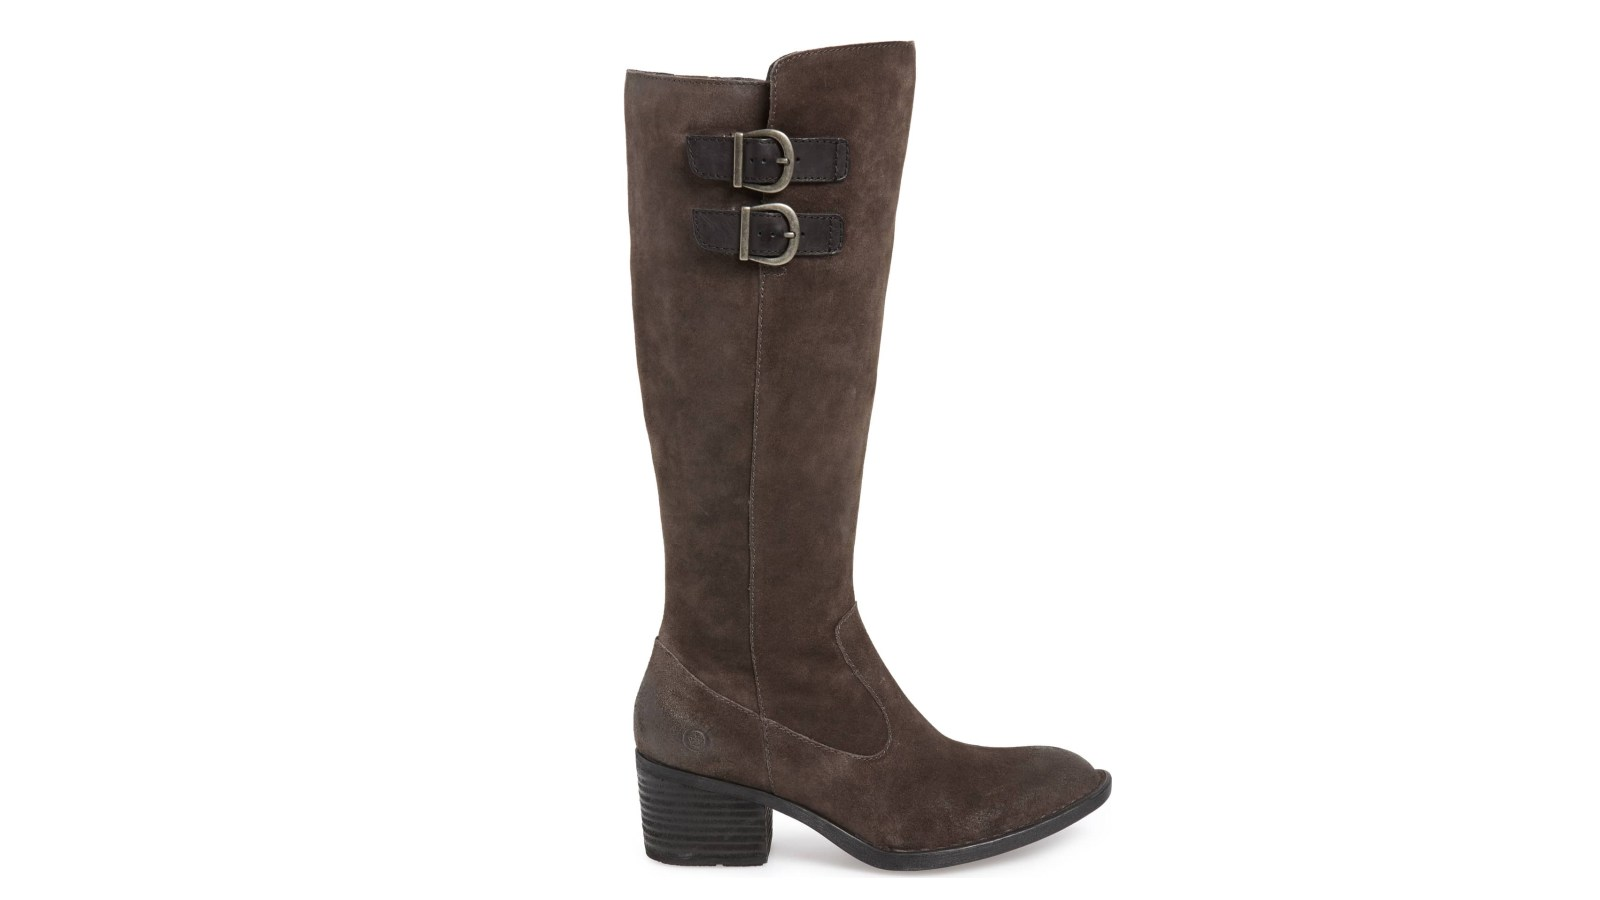 f6bb270230d These Equestrian-Inspired Boots Are Ideal for Winter   On Sale